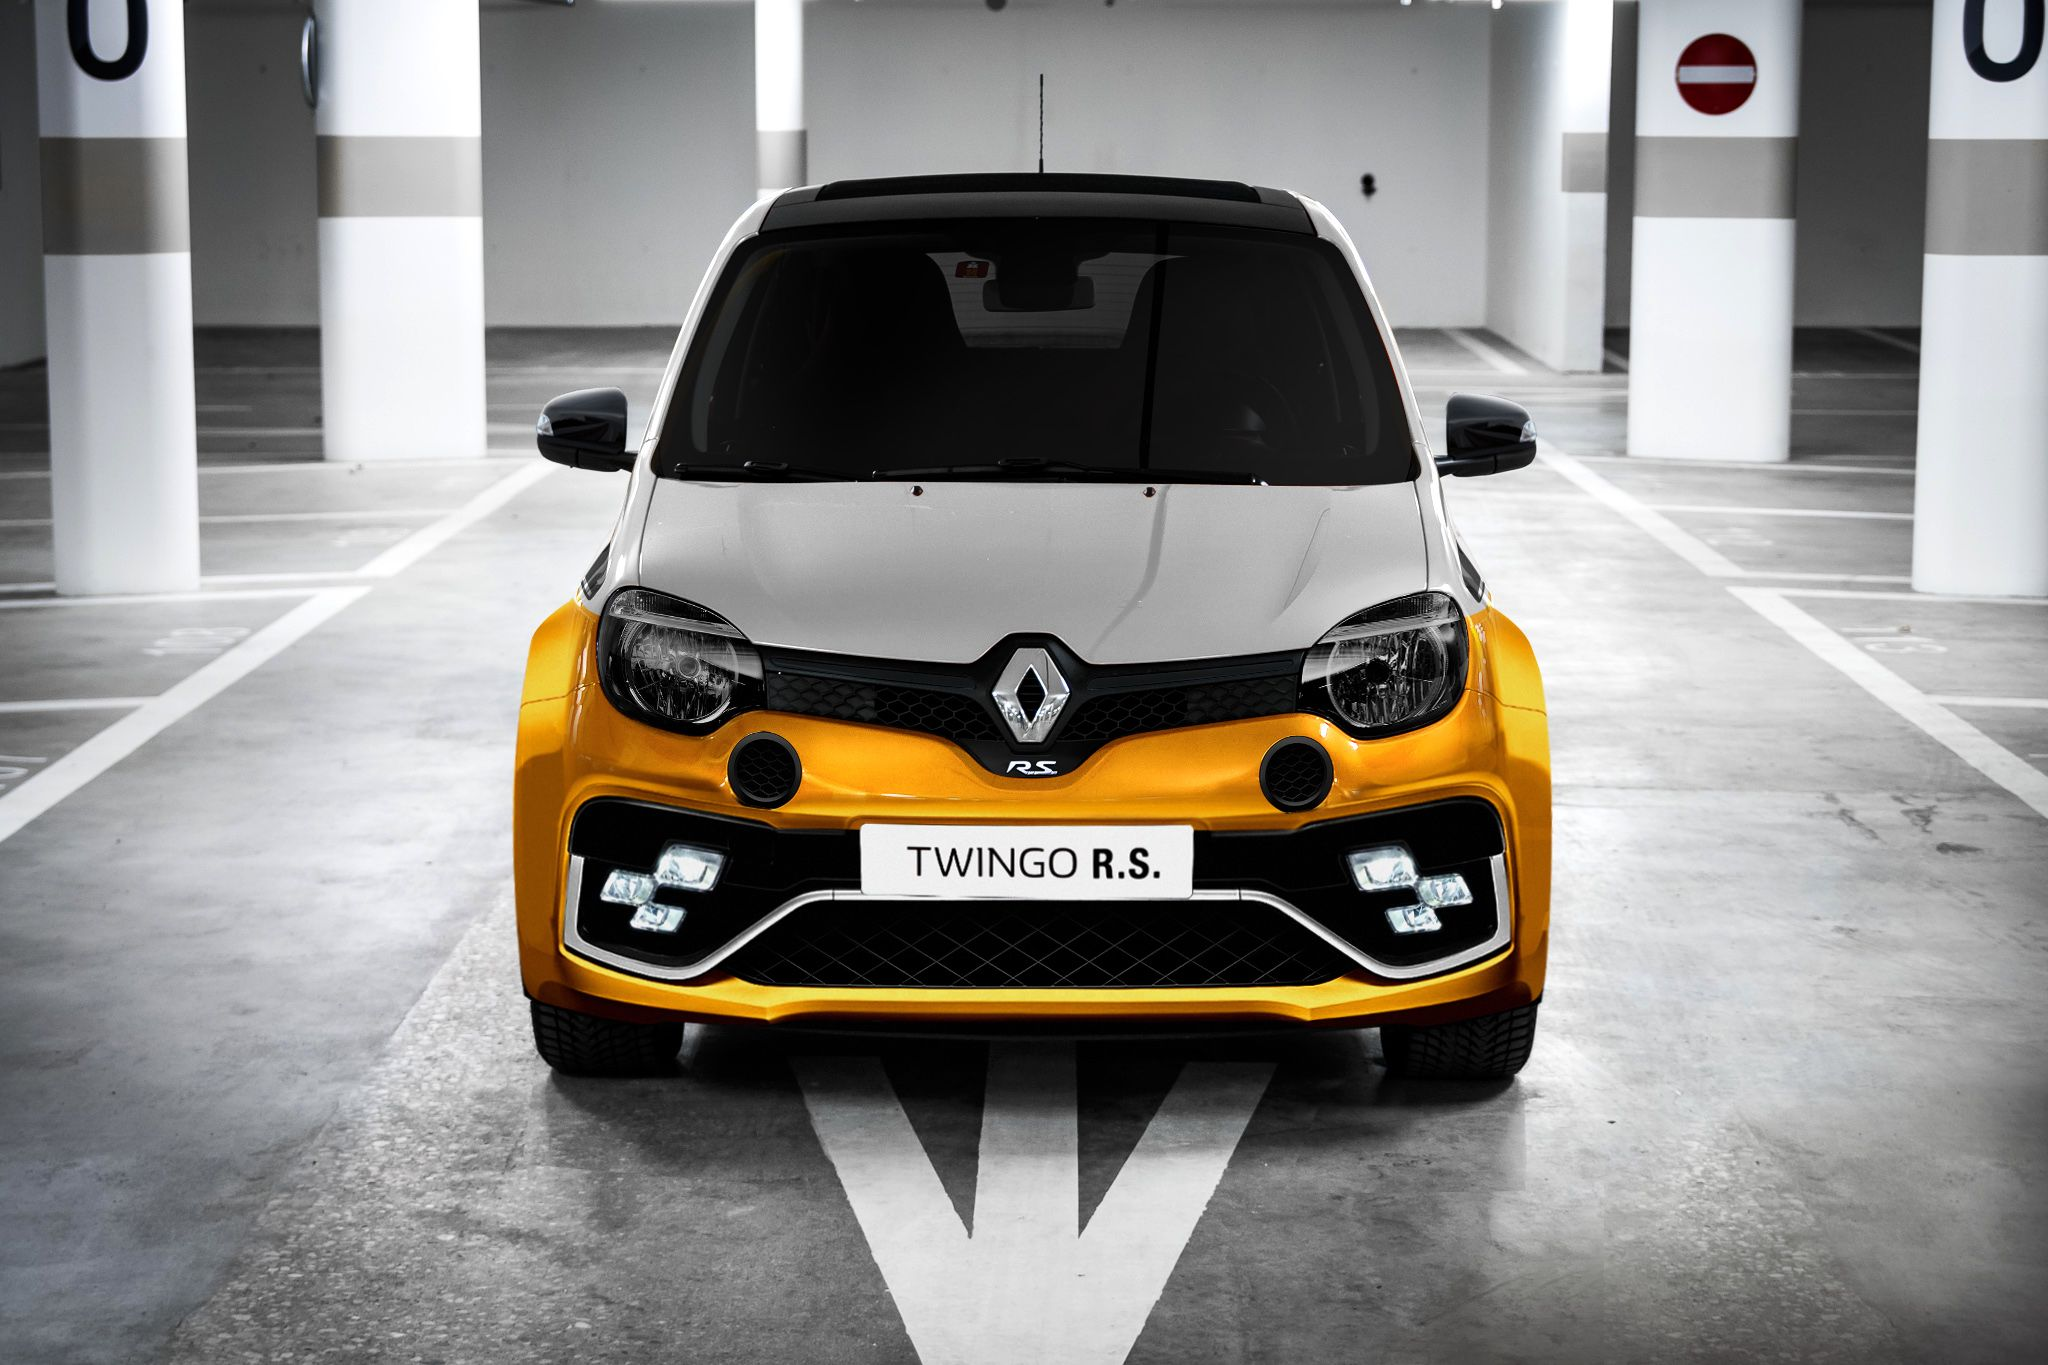 renault twingo r s 2017 render monholo oumar 2016 favz cars cars motorcycles. Black Bedroom Furniture Sets. Home Design Ideas